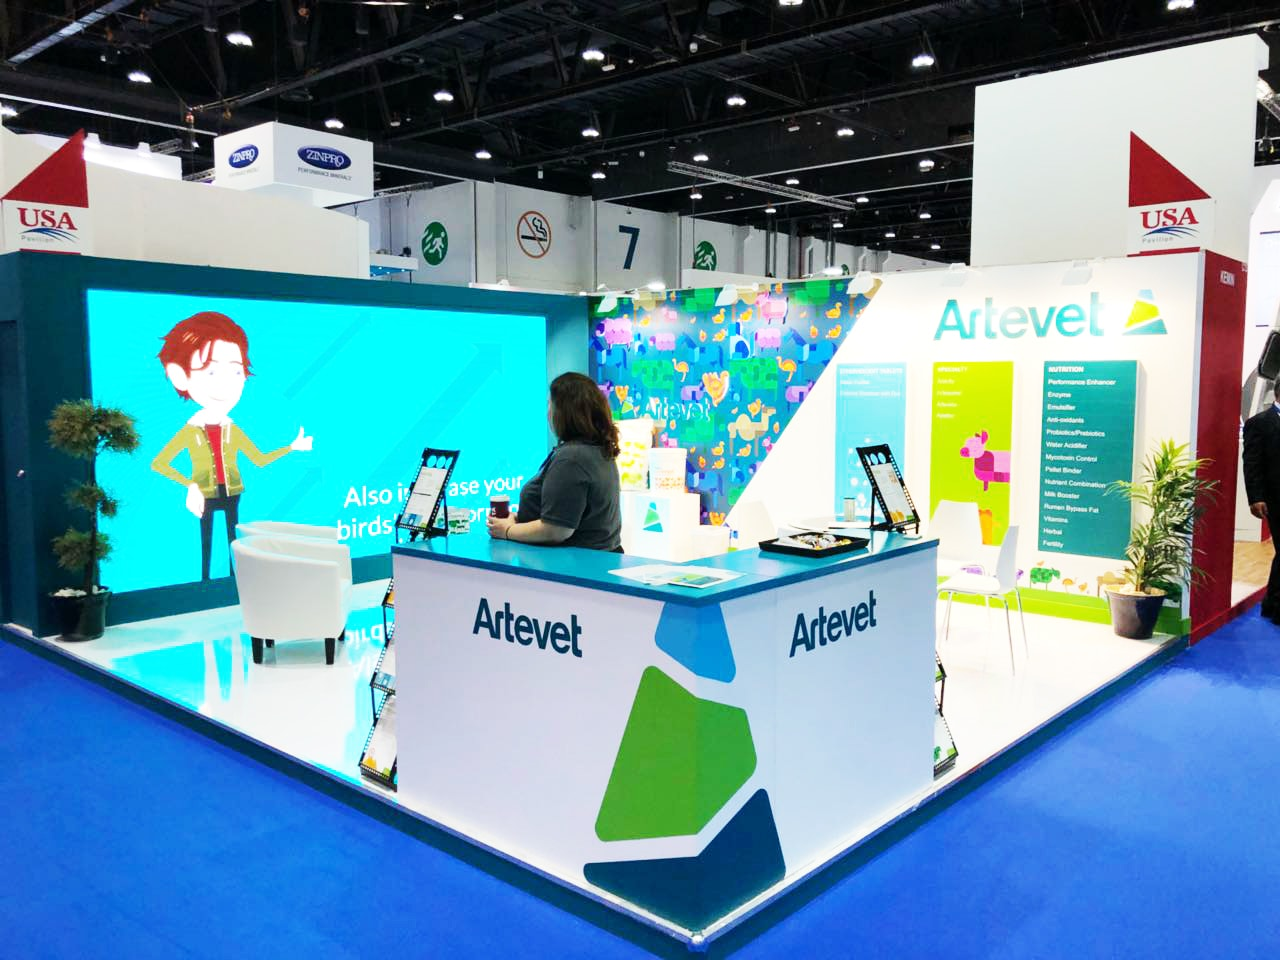 Exhibition Stand Builders Es : Exhibition stand build and design for artevet